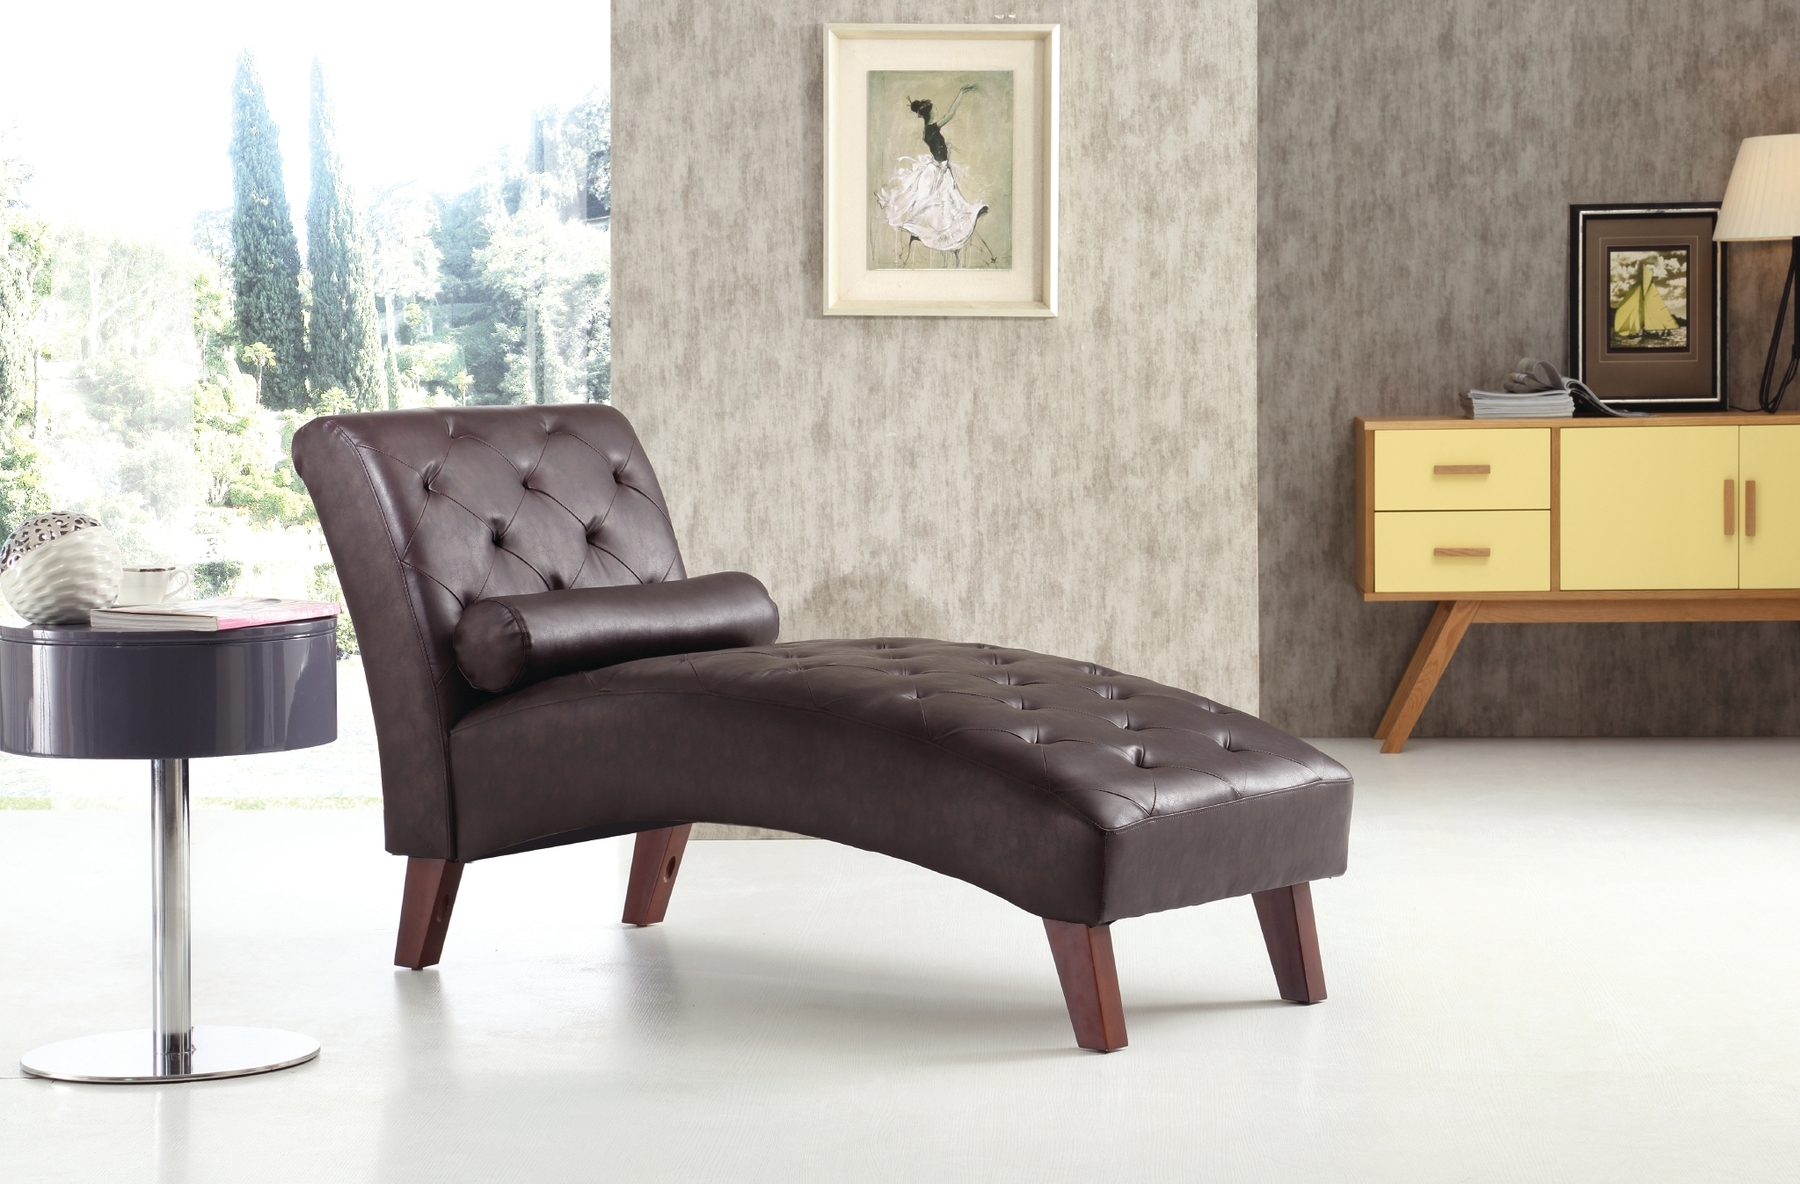 Brown Chaises In Most Up To Date Newbury Brown Chaise G237 Glory Furniture Chaises, Lounge Chairs (View 13 of 15)